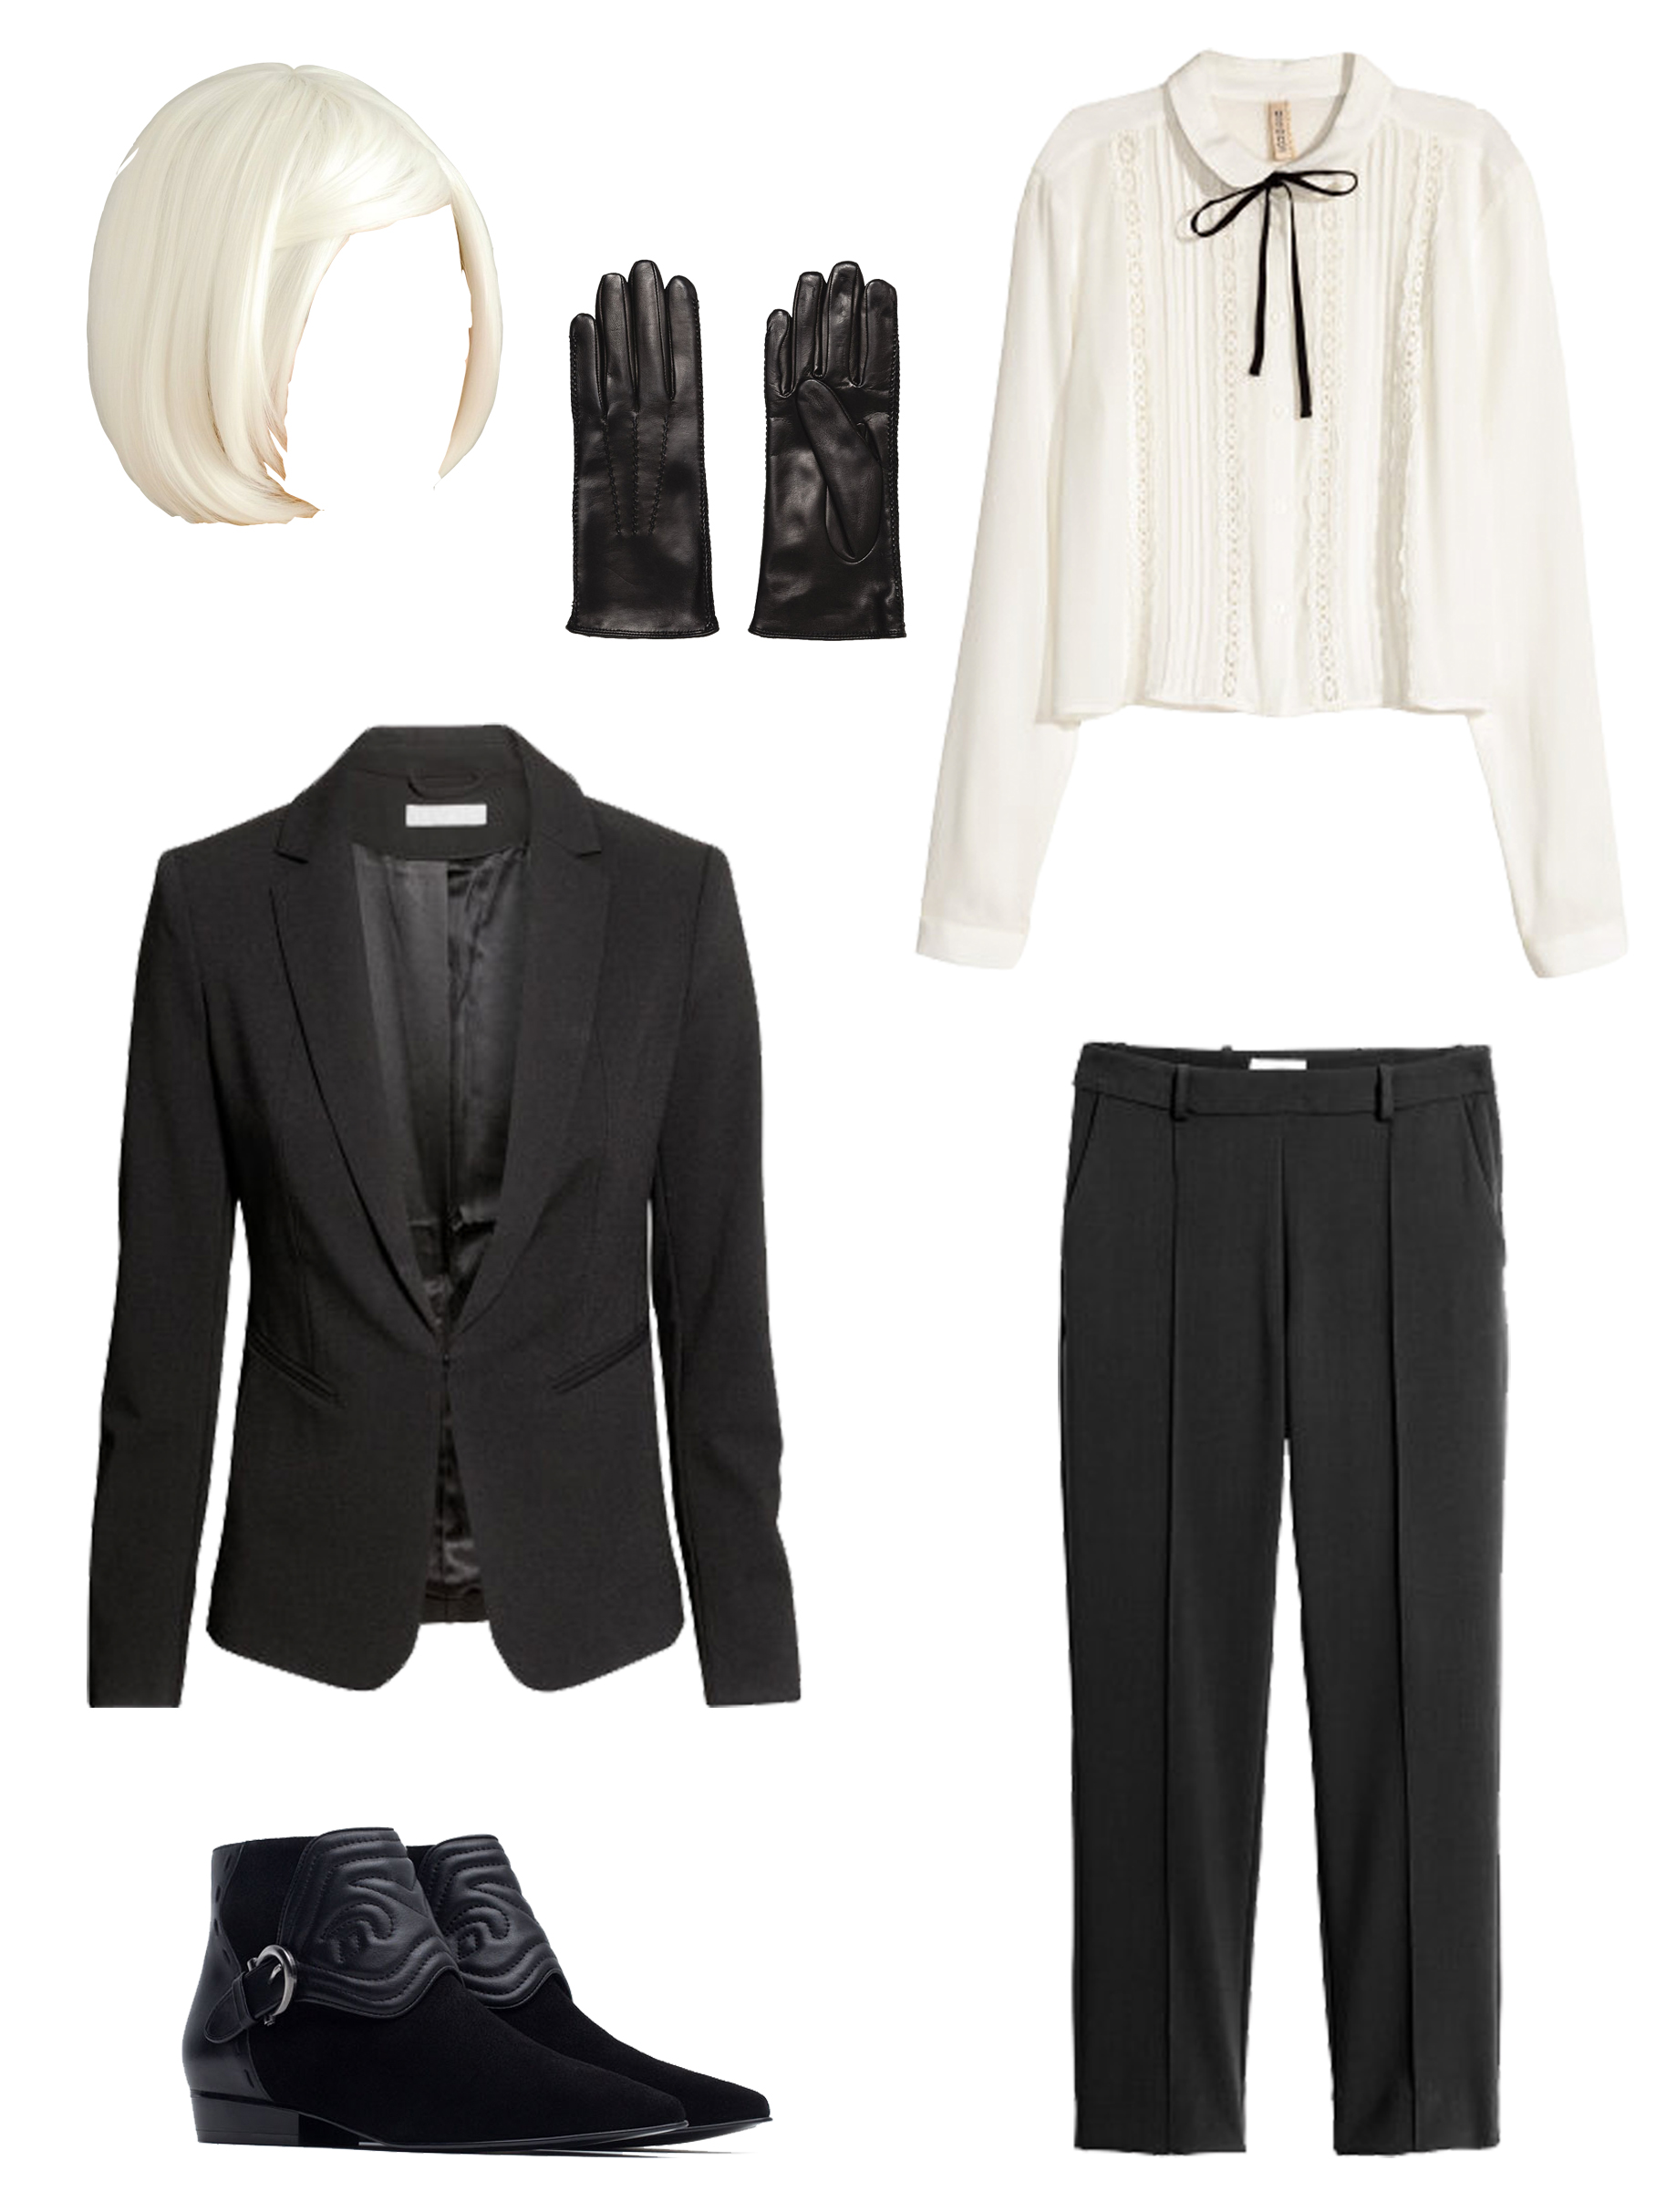 Wig from Aliexpress, Sunglasses from Topshop, White Blouse, Blazer & Pants from H&M, Gloves and Boots from Zara